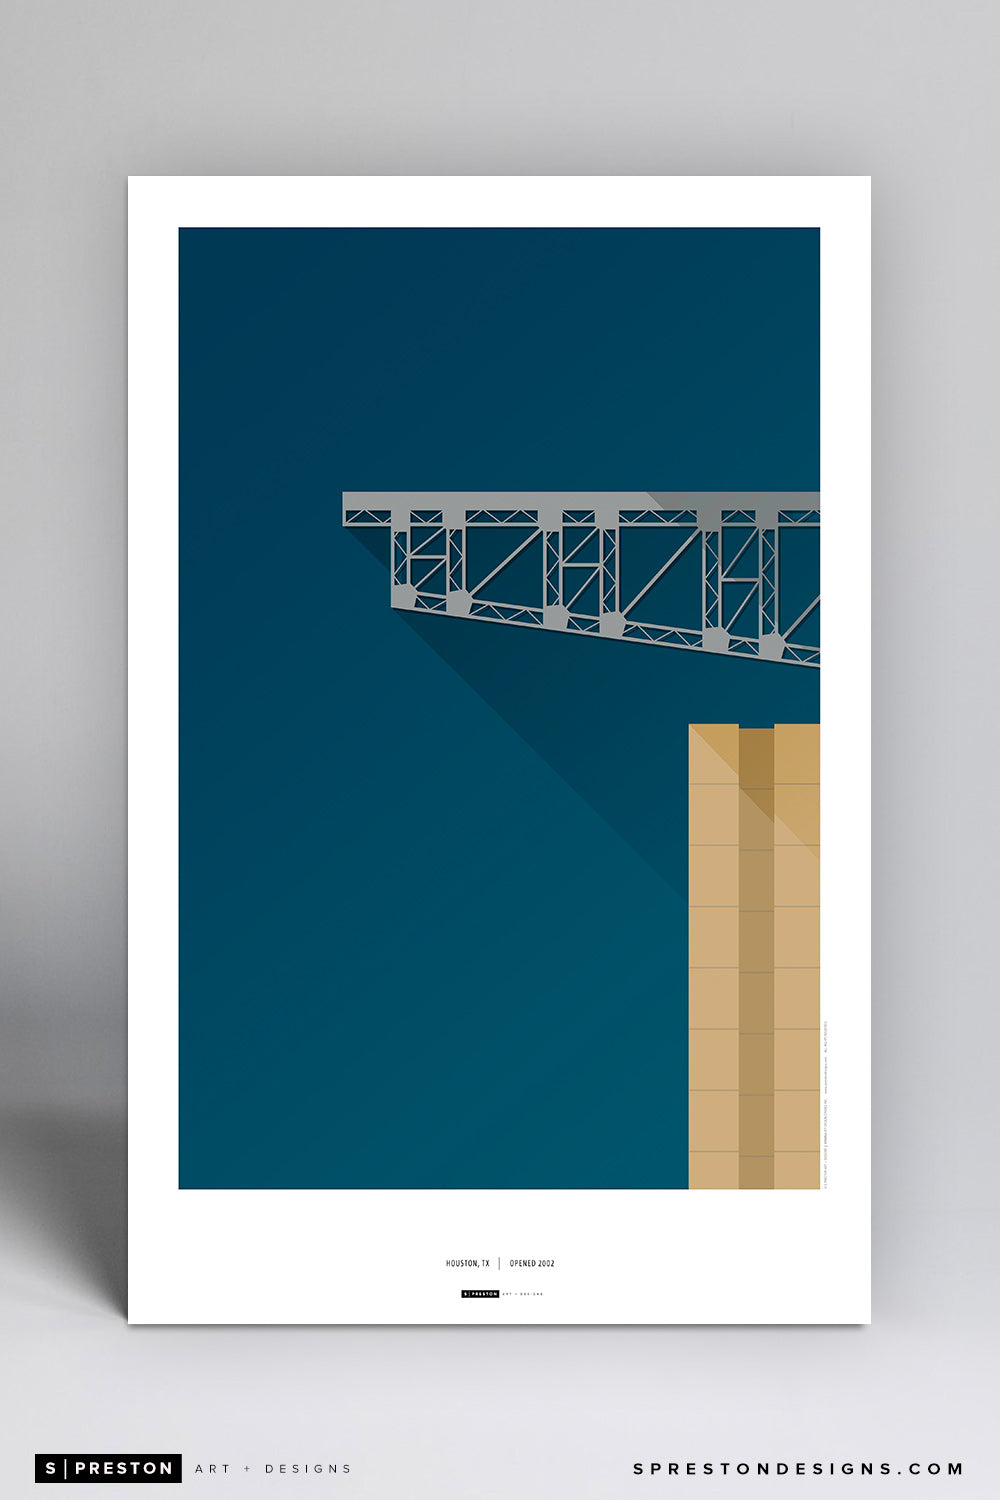 Minimalist NRG Stadium Poster Print Houston Texans - S Preston